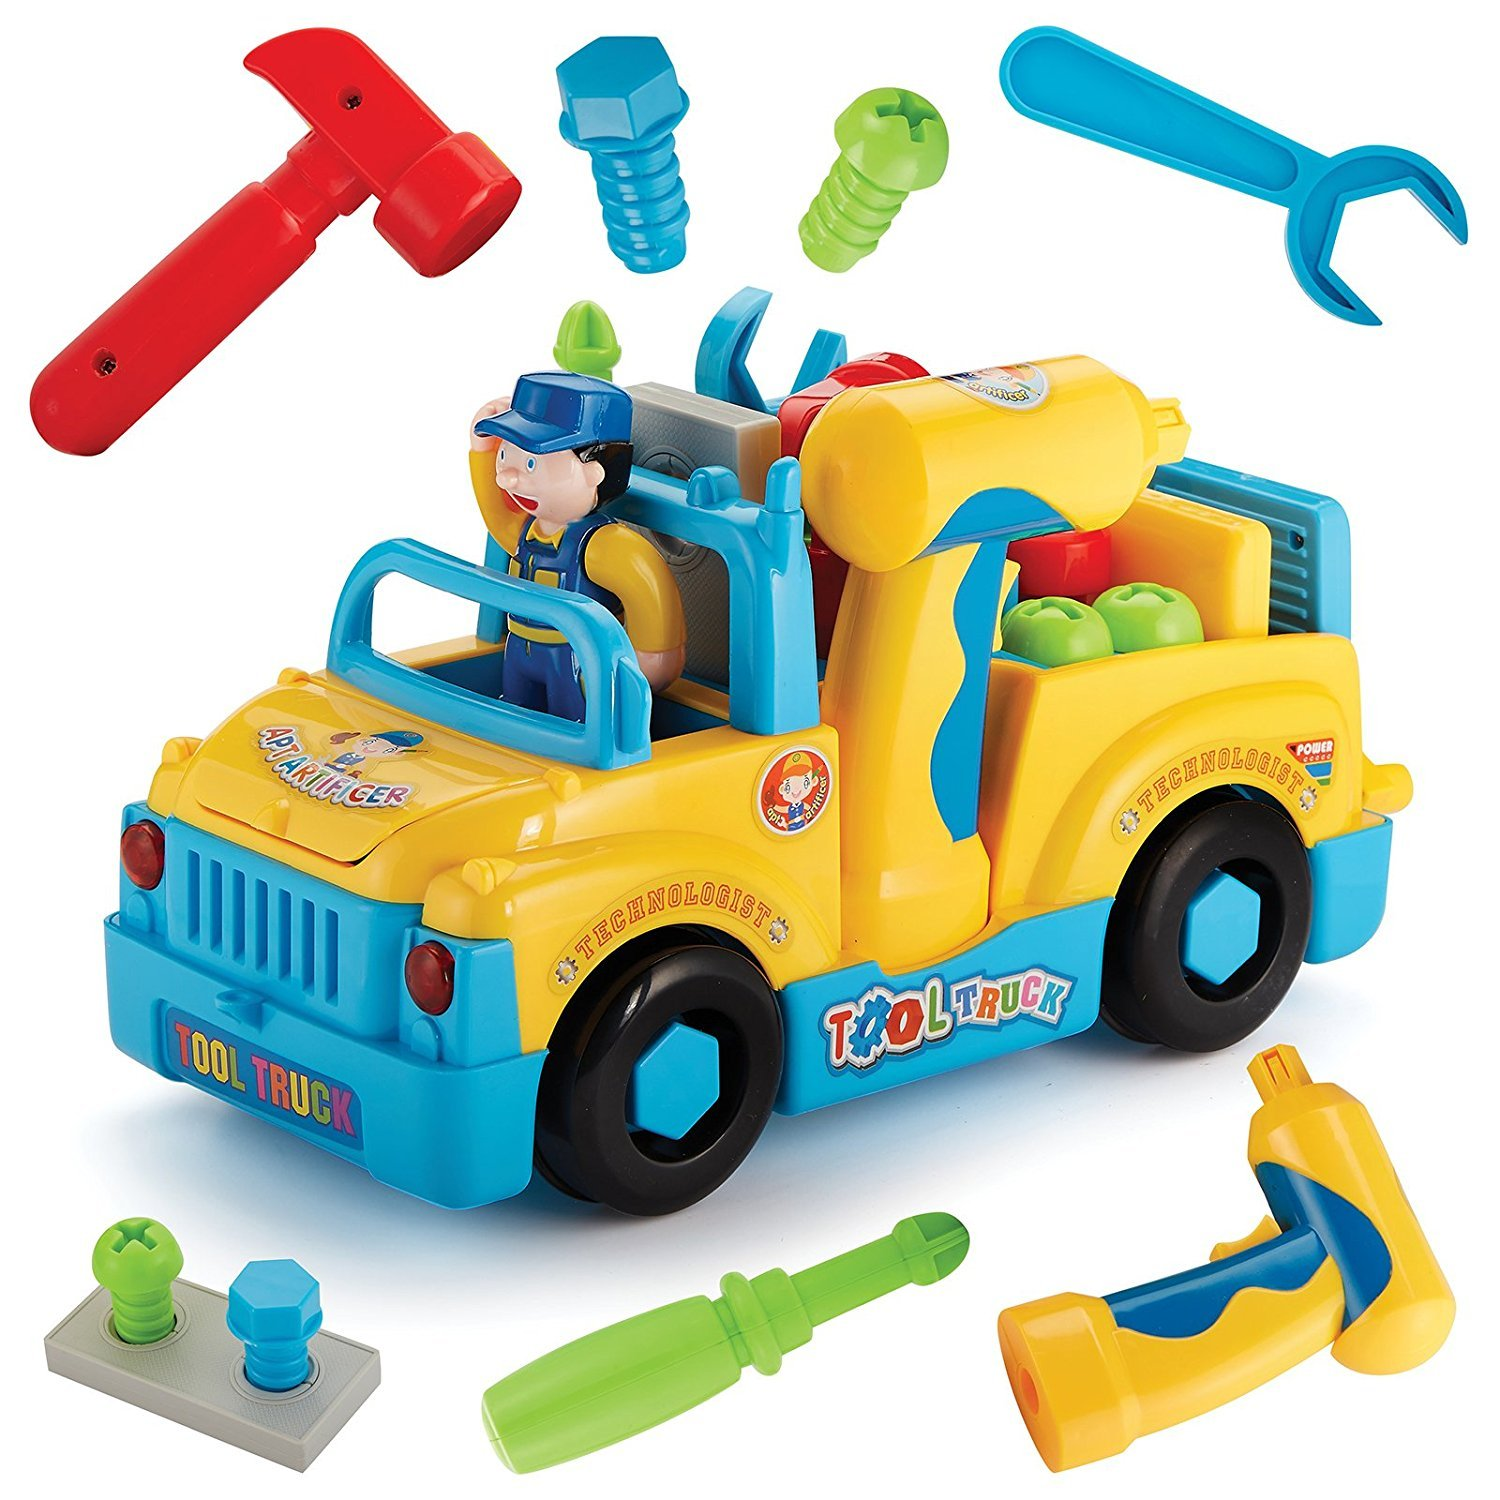 Liberty Imports Multifunctional Take Apart Toy Tool Truck With Electric Drill and Power Tools, Lights and Music, Bump and Go Action by Liberty Imports